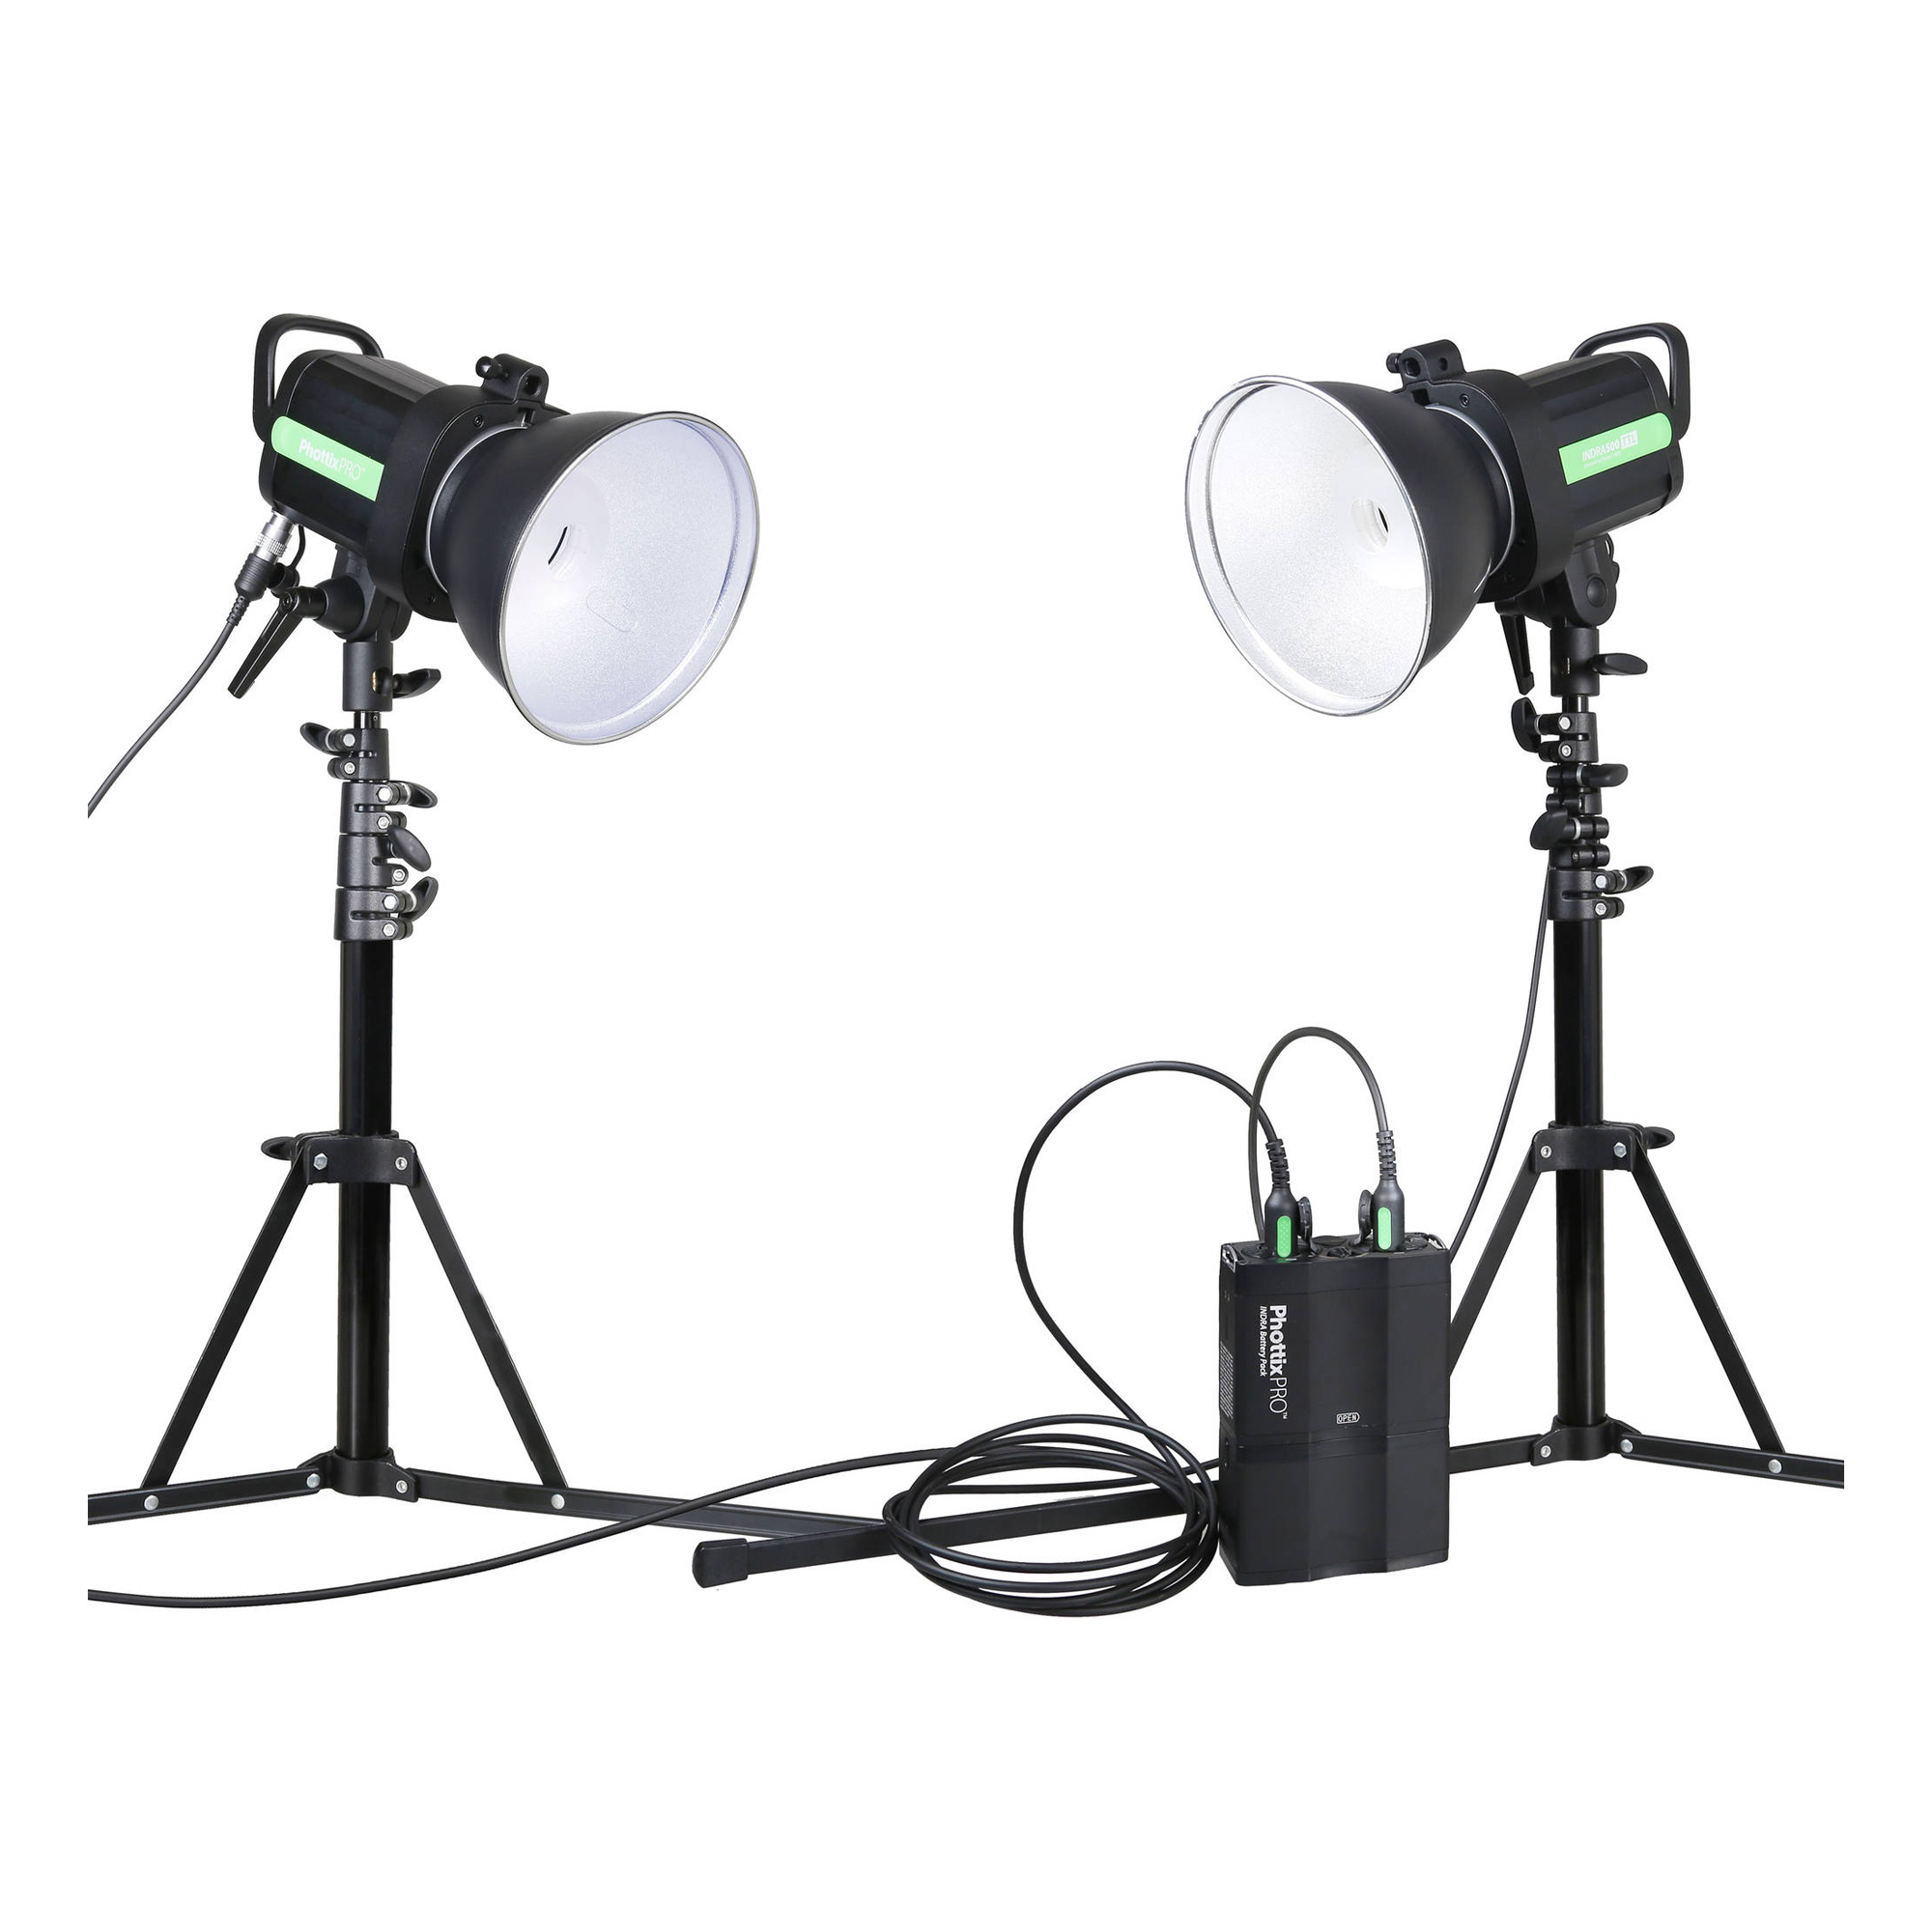 INDRA500 TTL Monolight Kit with Battery Pack